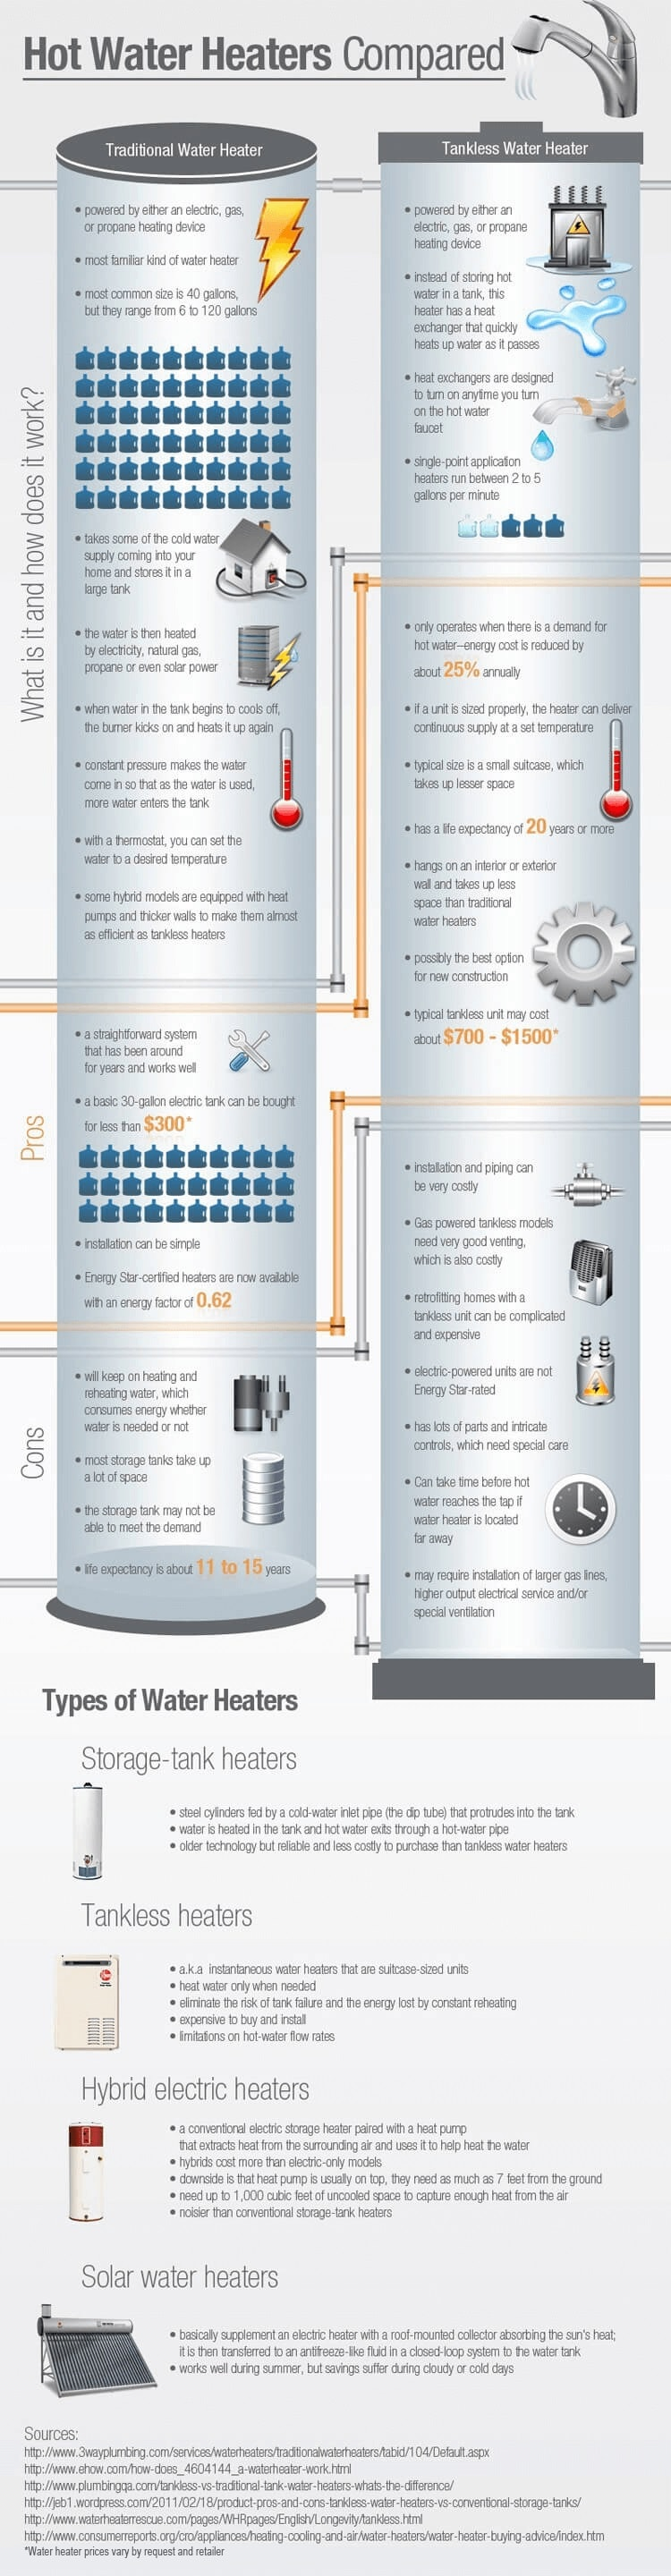 Water Heaters Compared